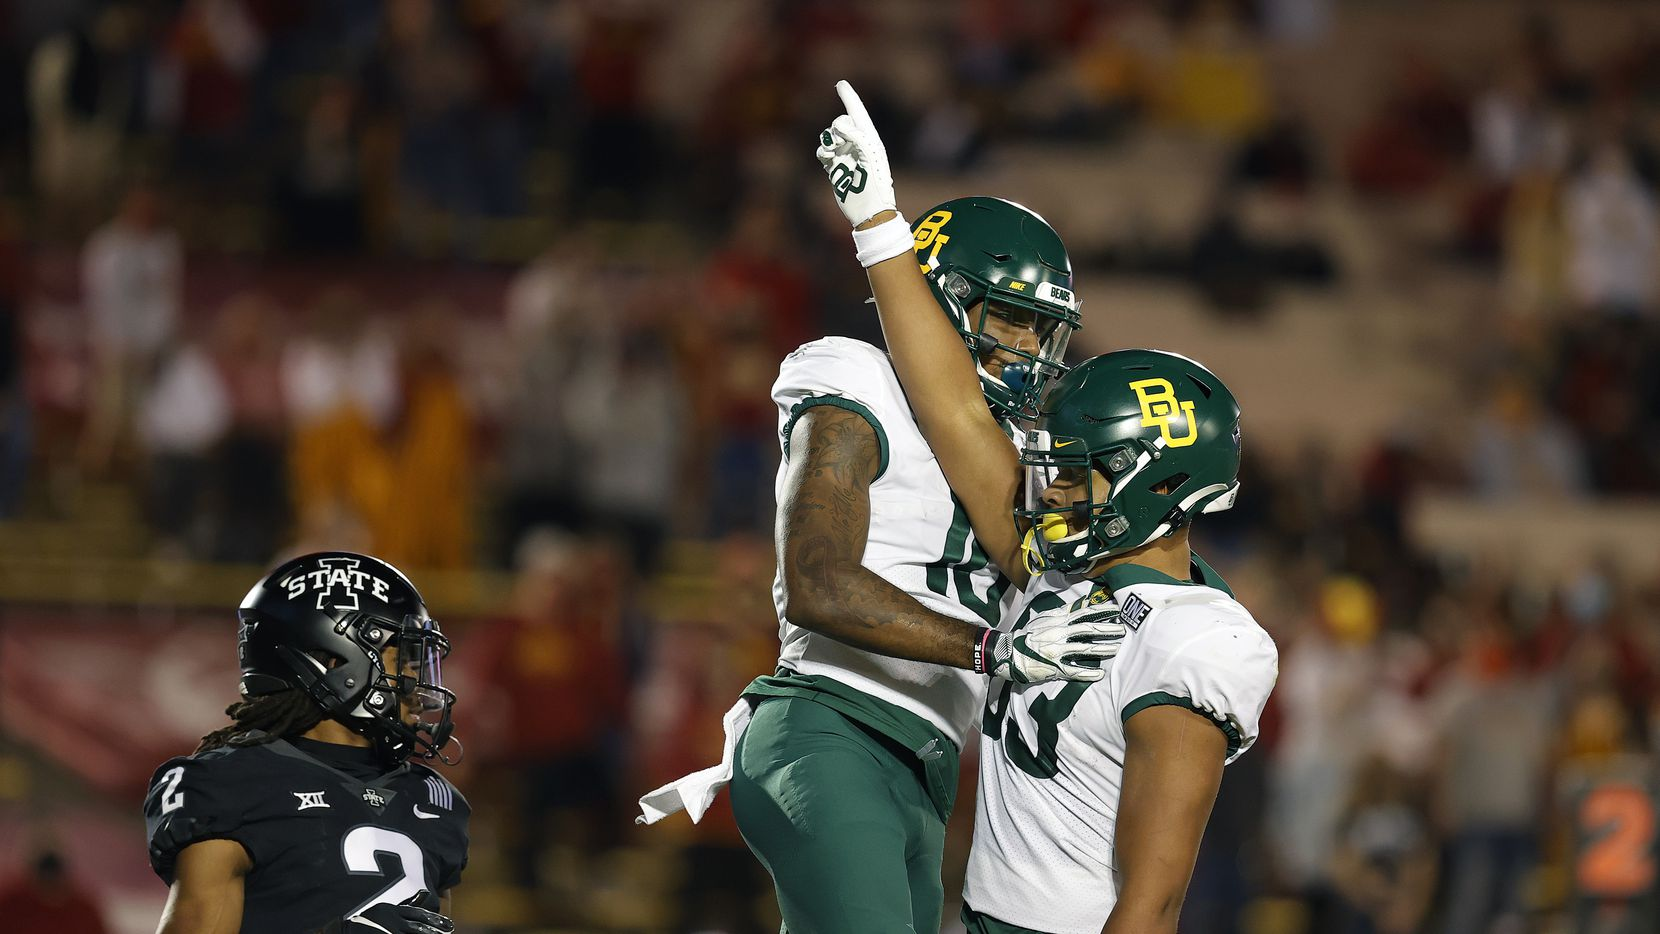 Baylor tight end Drake Dabney, right, reacts after running in a touchdown as Baylor wide receiver Jared Atkinson, center, comes into celebrate as Iowa State defensive back Datrone Young, left, is late to the play during the first half of an NCAA college football game, Saturday, Nov. 7, 2020, in Ames. (AP Photo/Matthew Putney)